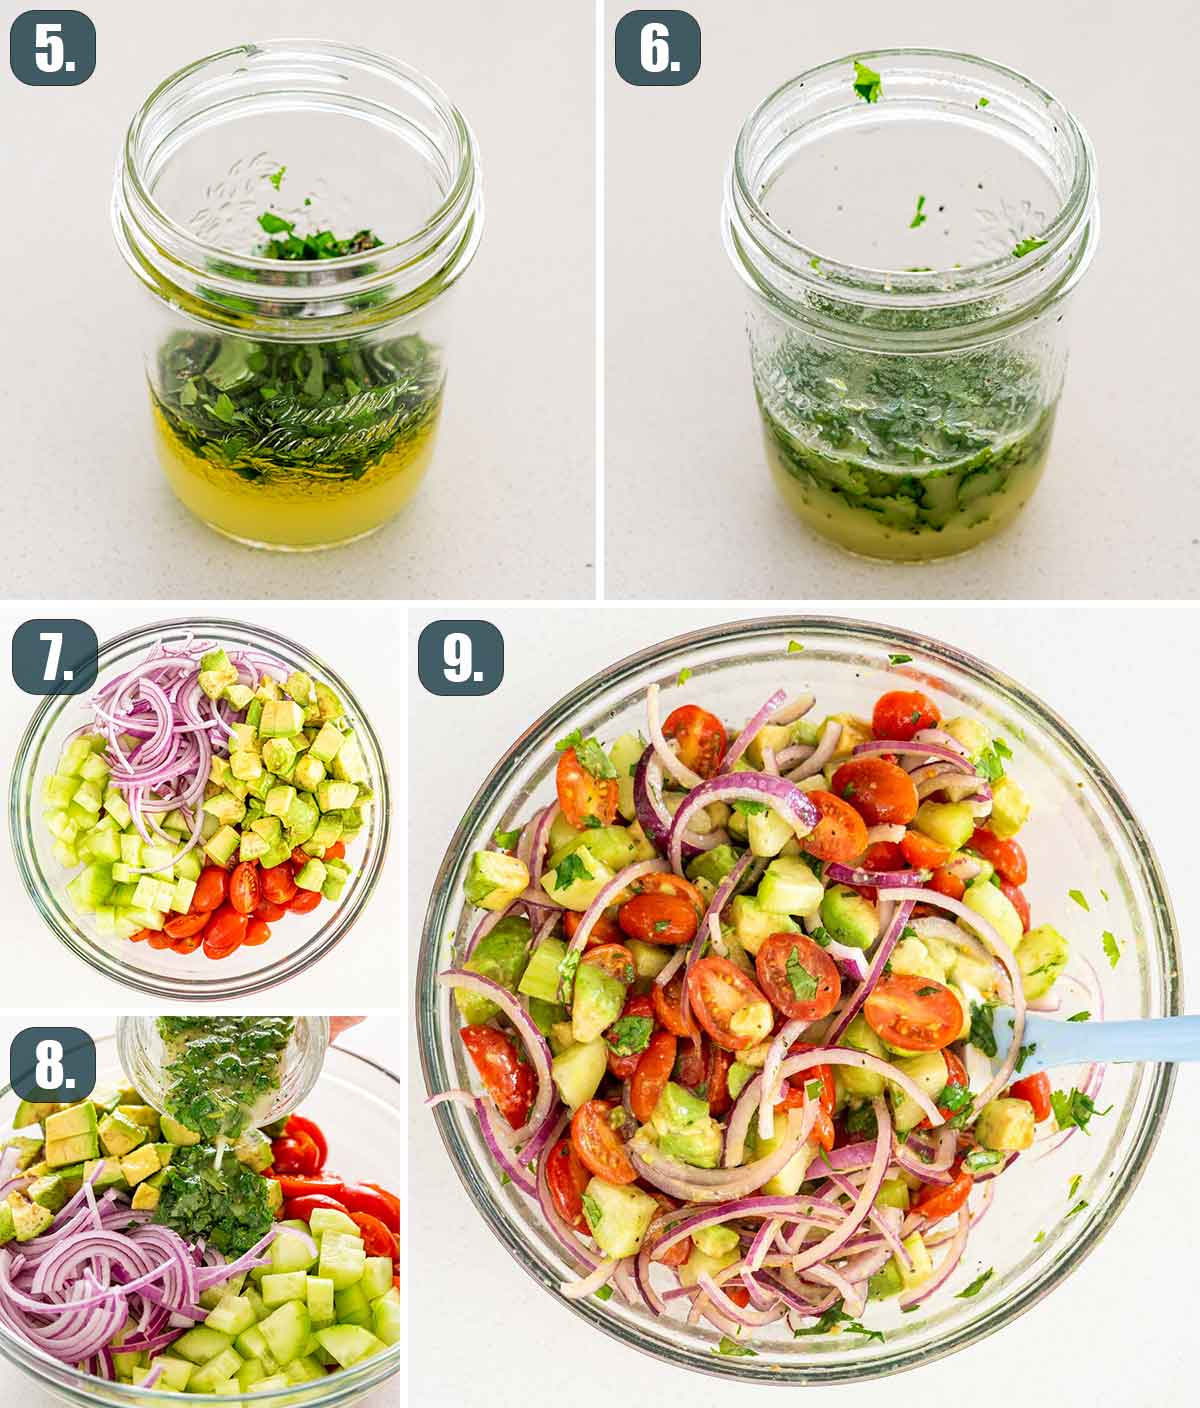 detailed process shots showing how to make avocado salad.